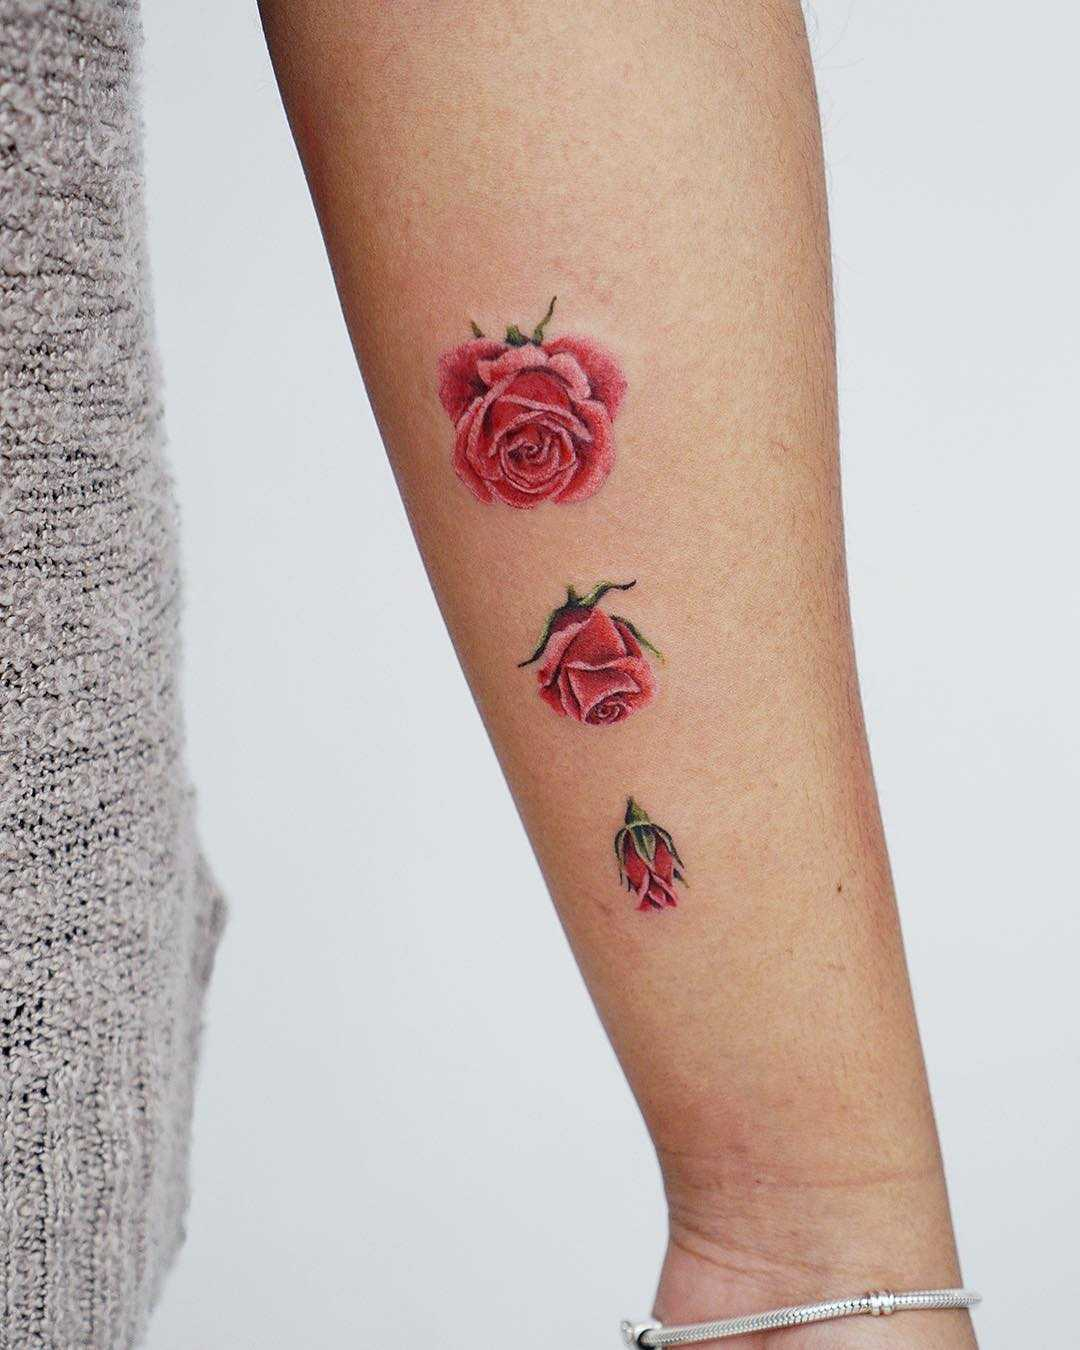 Roses by tattooist picsola